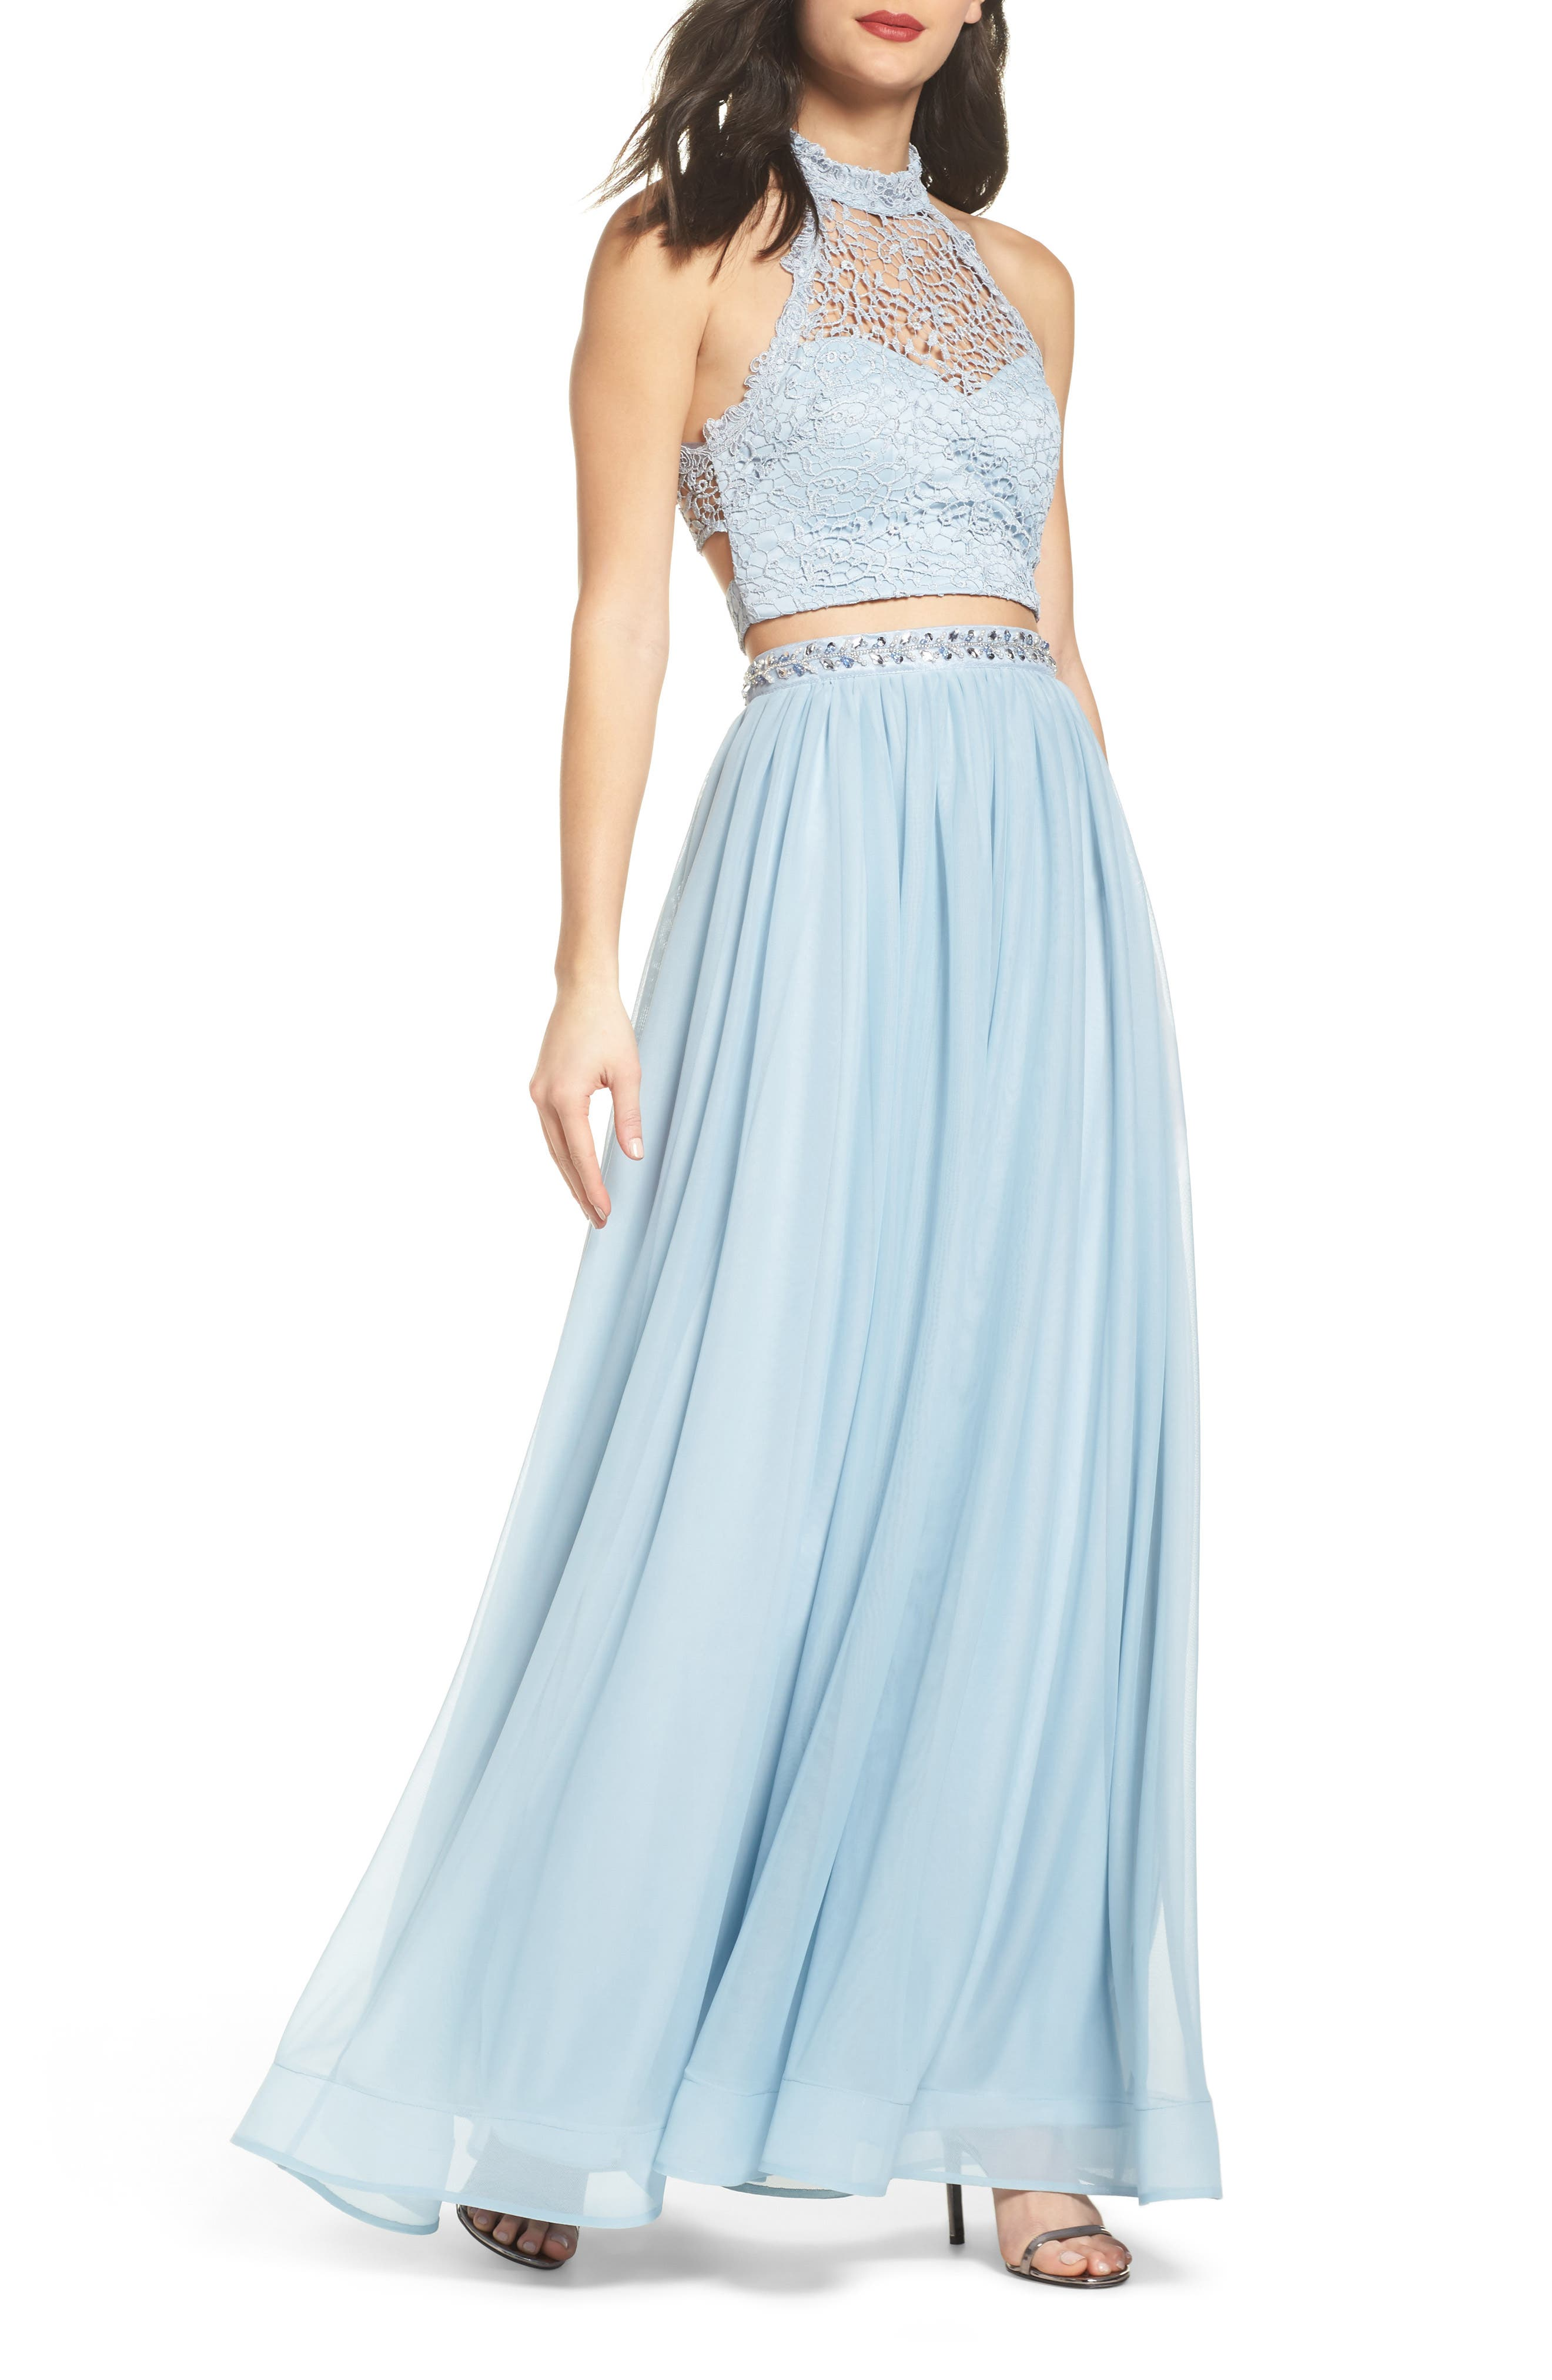 Main Image - Sequin Hearts Chemical Lace Two-Piece Halter Gown